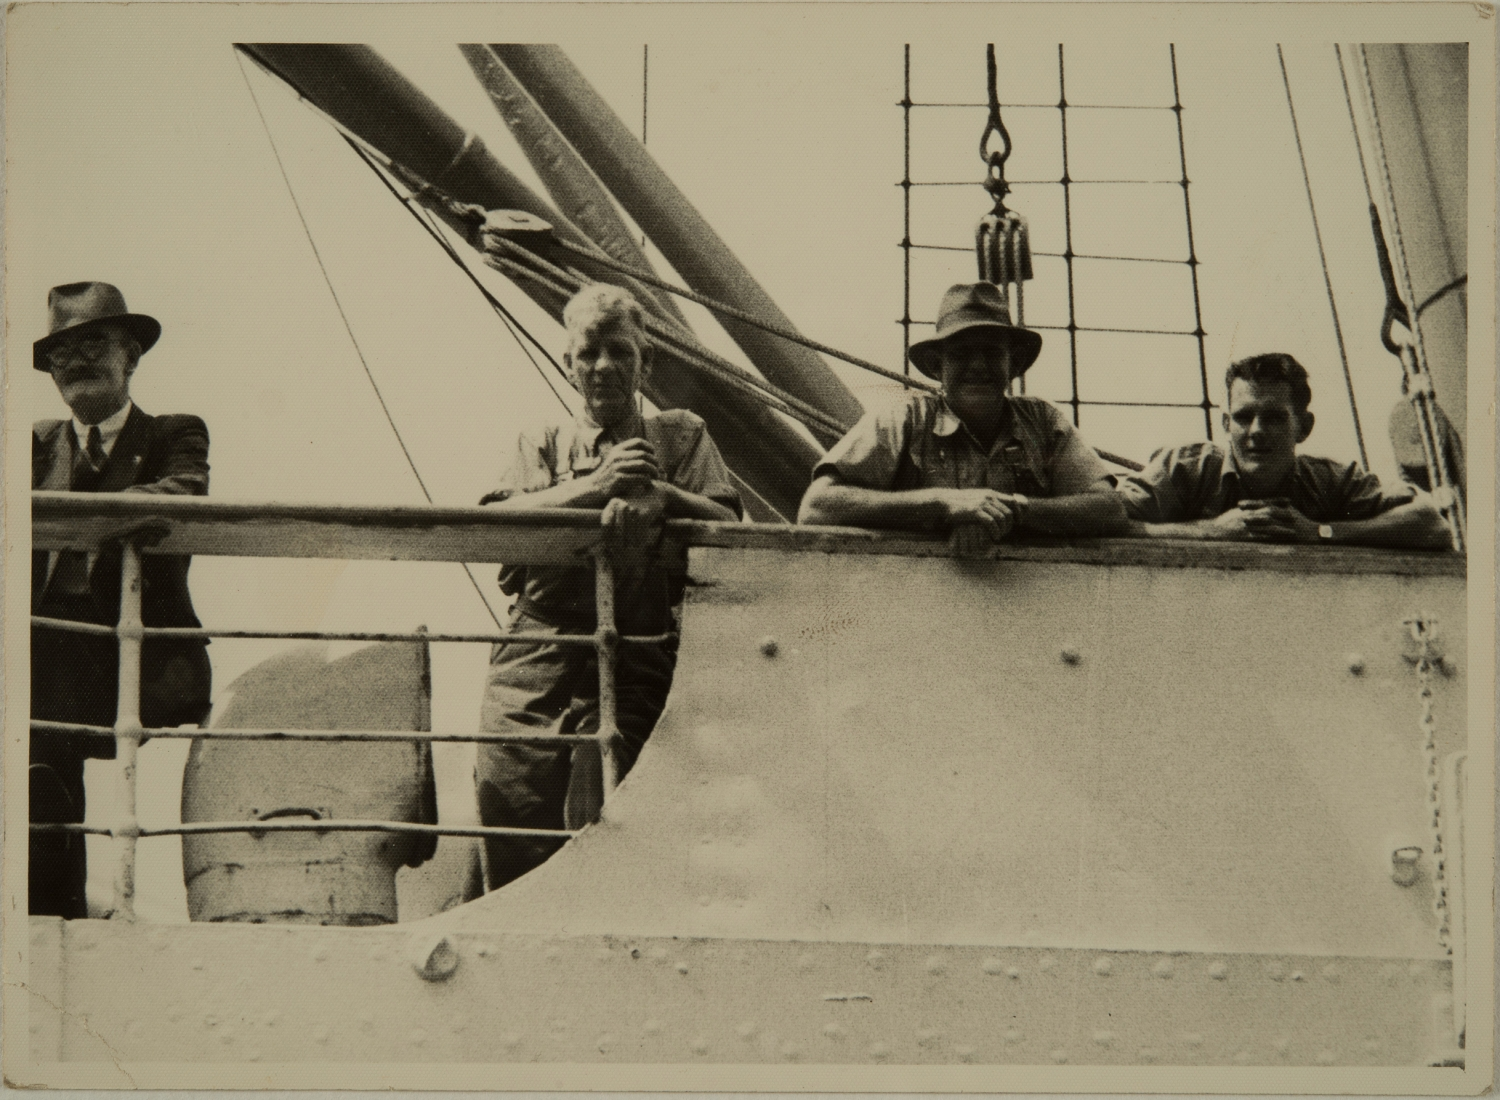 Black and white photograph depicting four men on the deck of a boat. The photograph is visible through a rectangular shaped reveal.